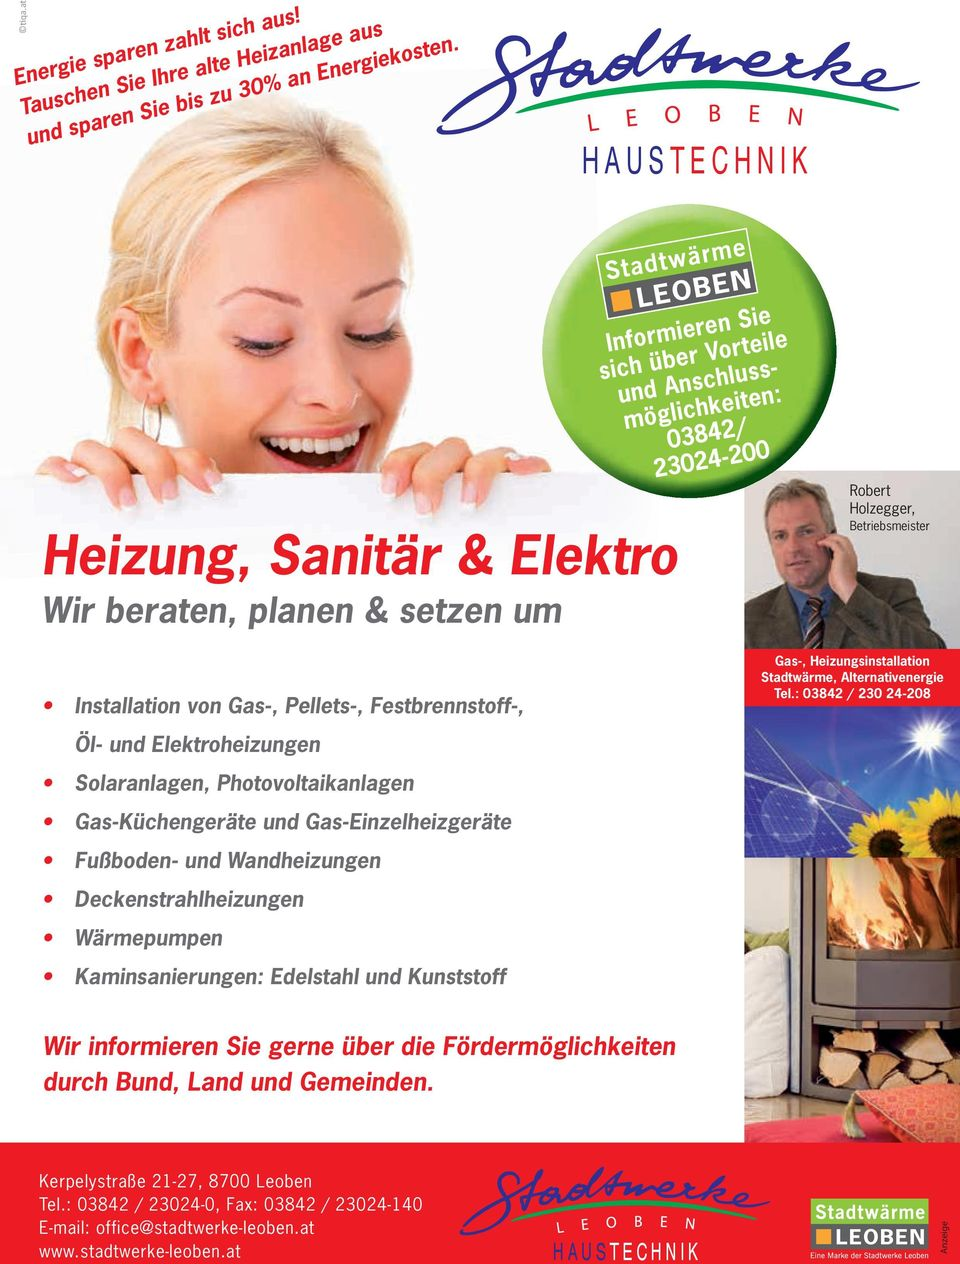 von Gas-, Pellets-, Festbrennstoff-, Gas-, Heizungsinstallation Stadtwärme, Alternativenergie Tel.